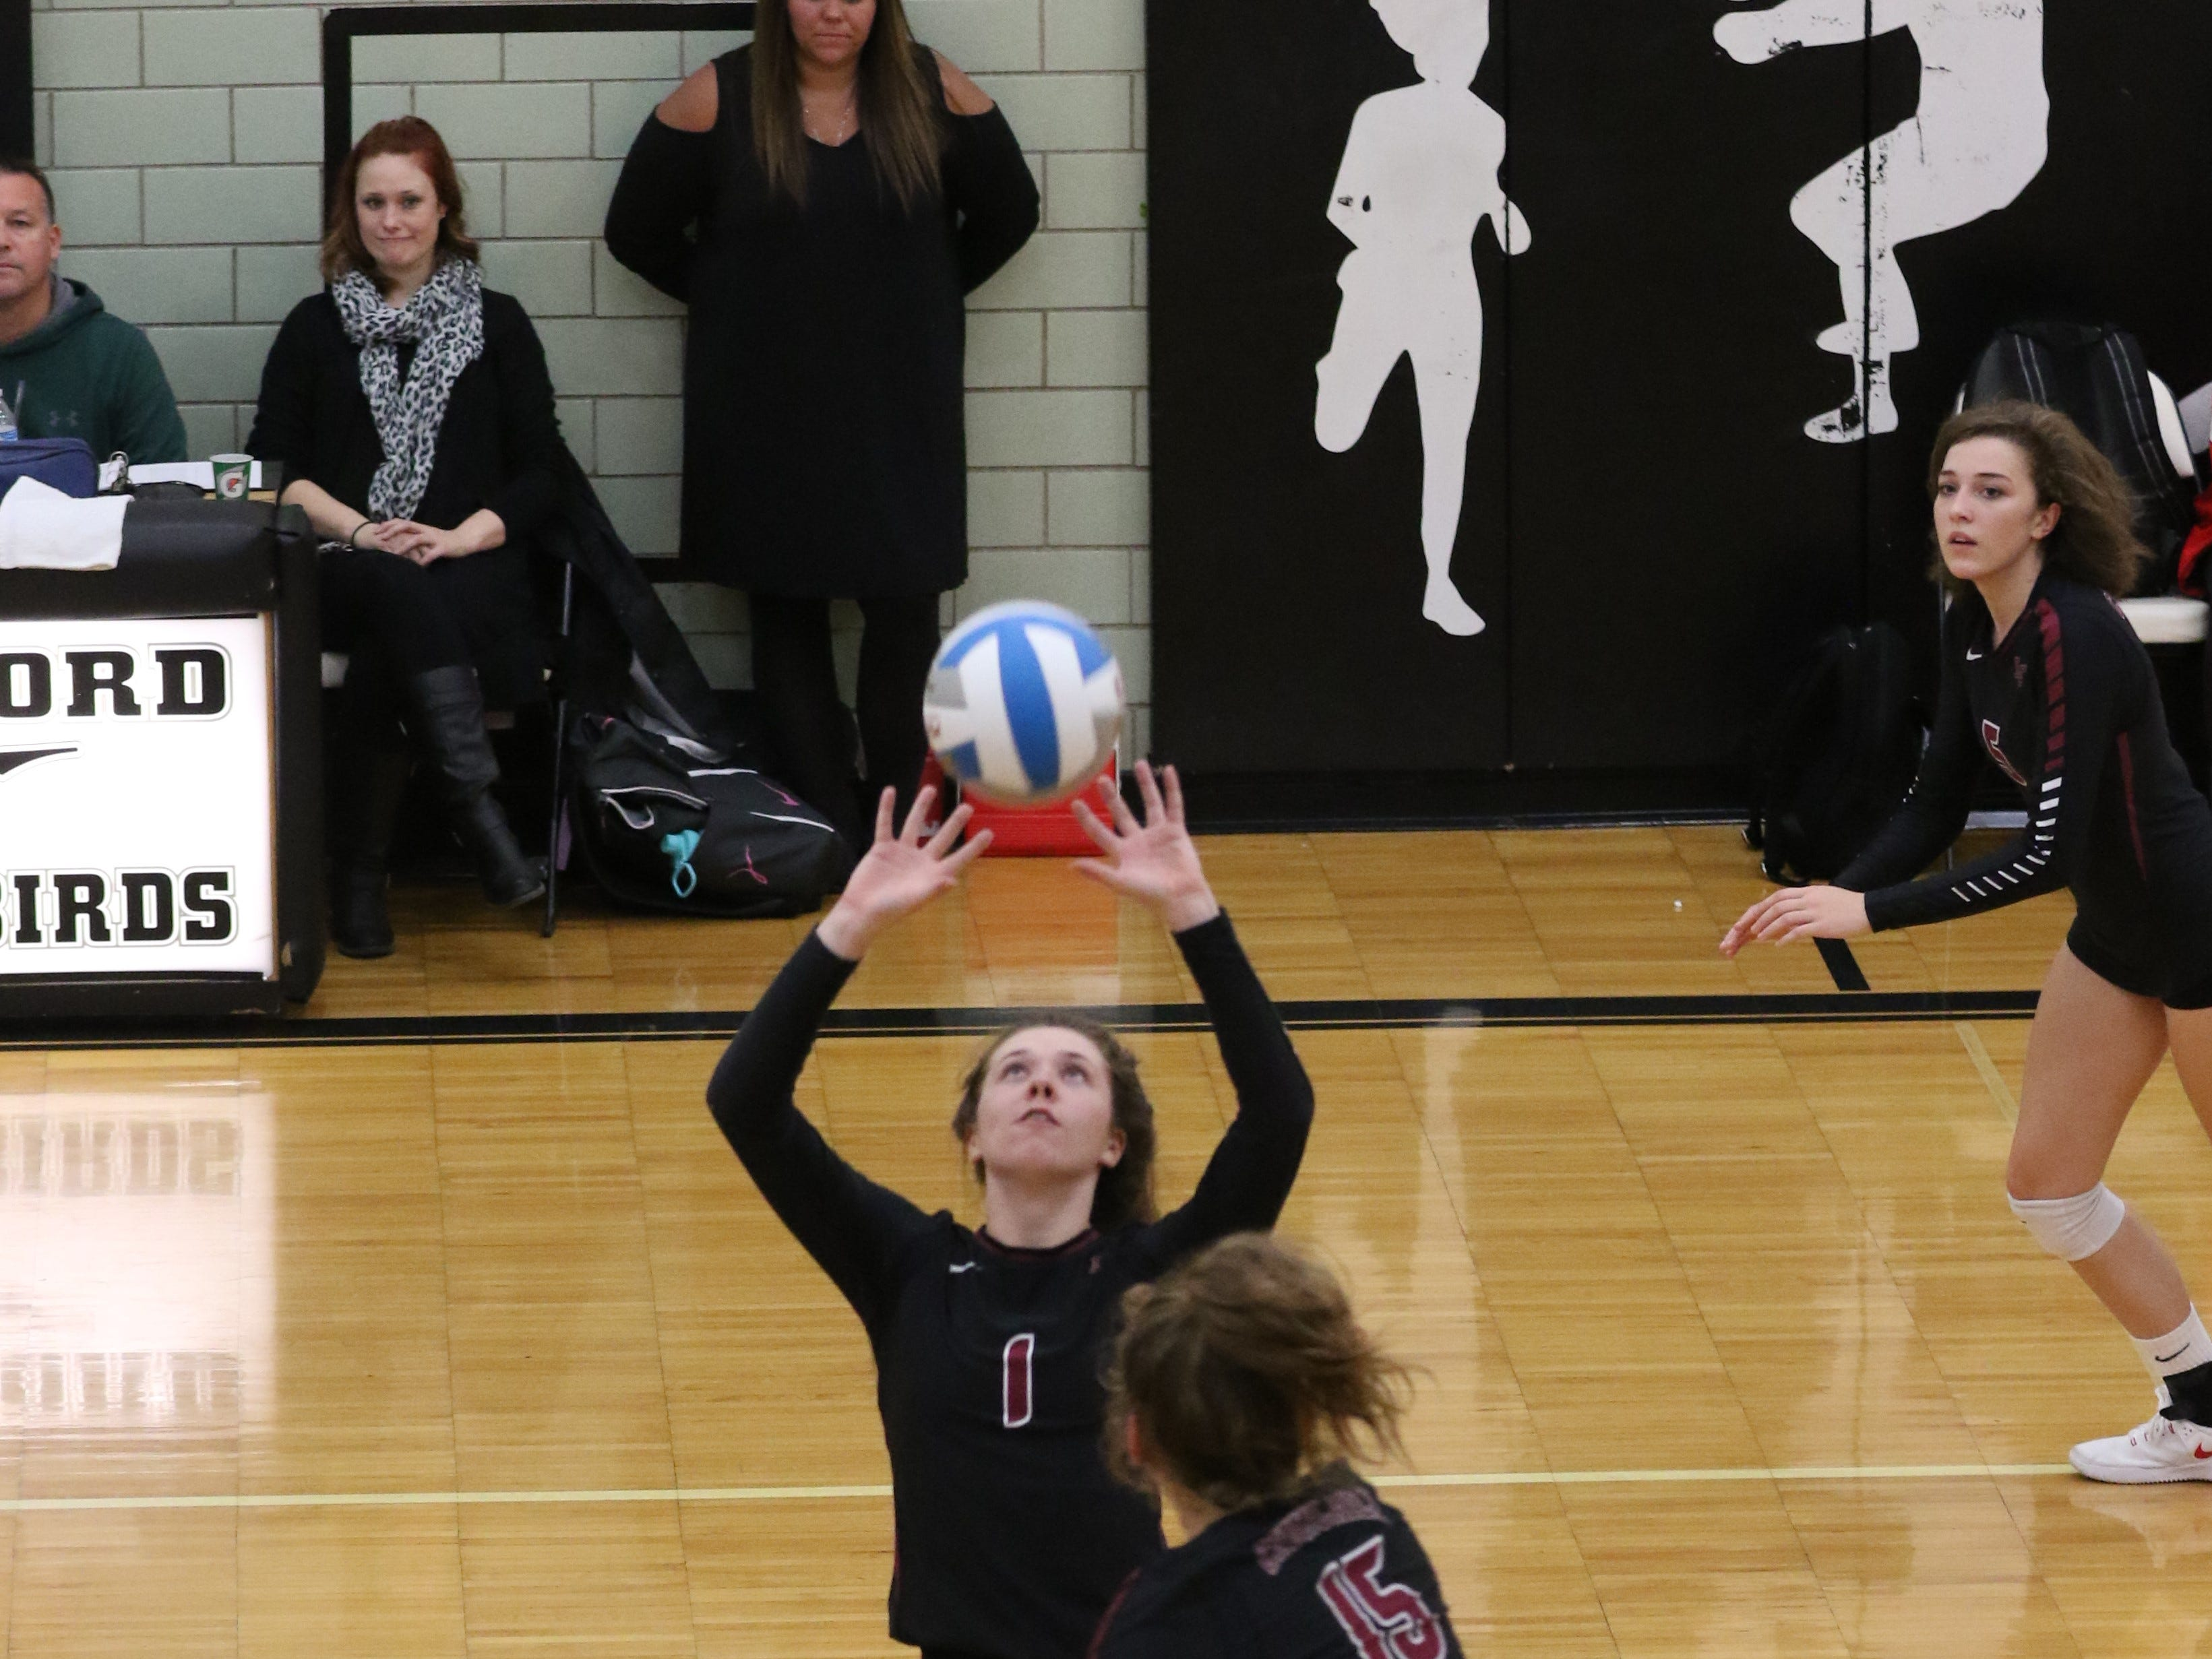 Chargers' senior setter Grace Vaeth (1) puts the ball on a tee for senior middle hitter Summer Clark. In the foreground is junior outside hitter Sarah Dunn (13).